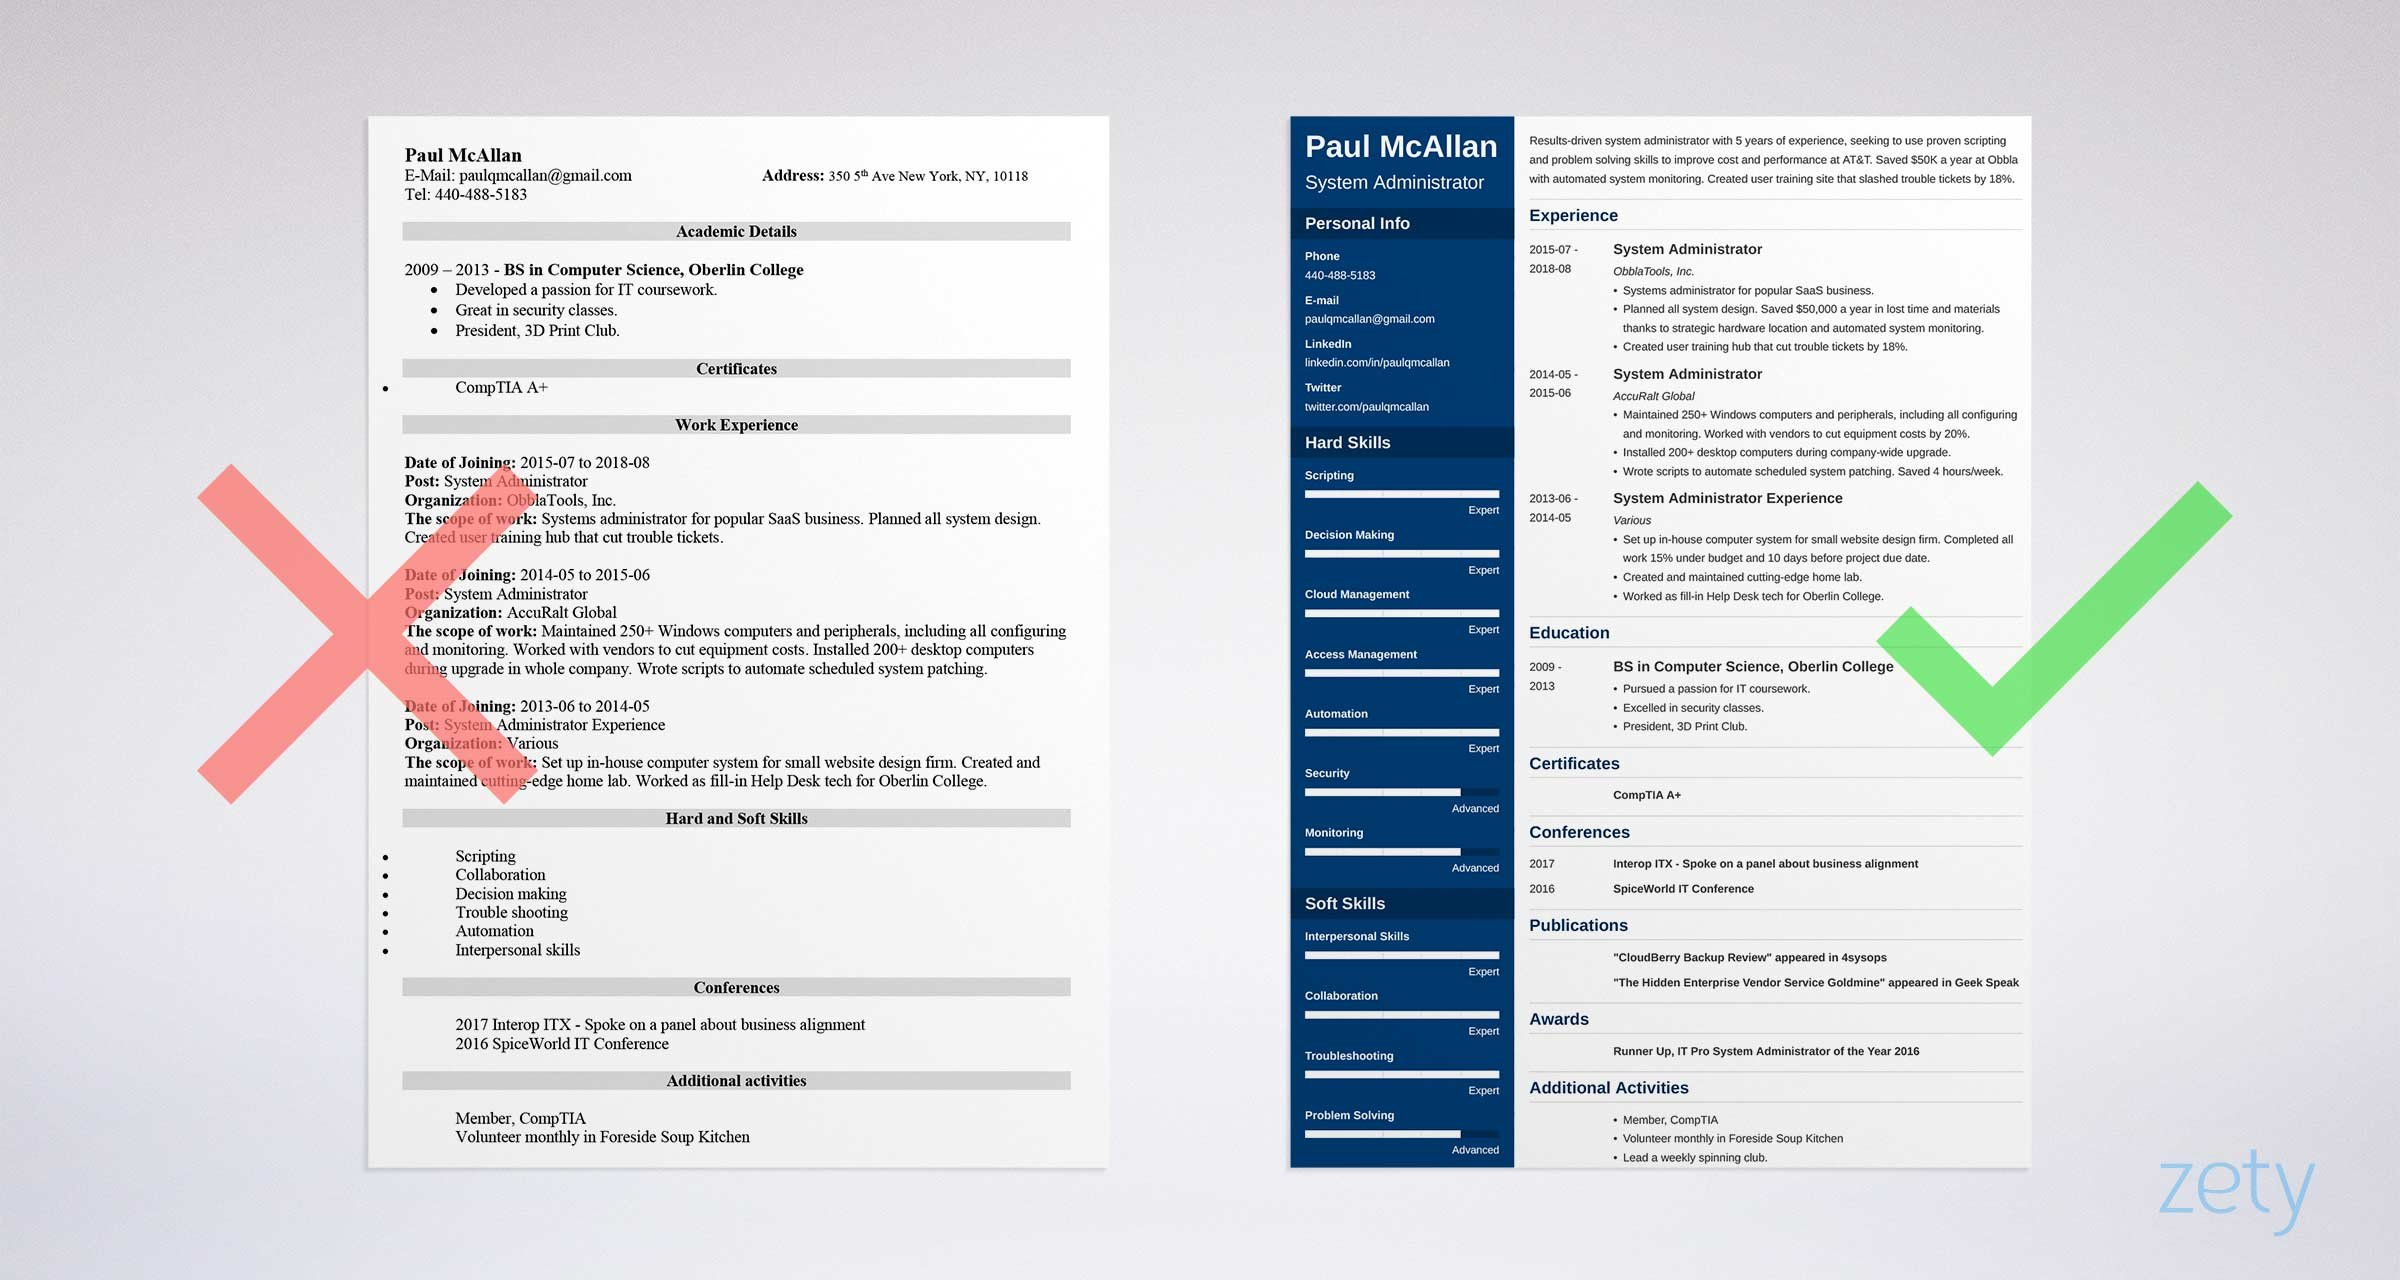 system administrator resume sample windows or linux physical education teacher software Resume System Administrator Resume Sample